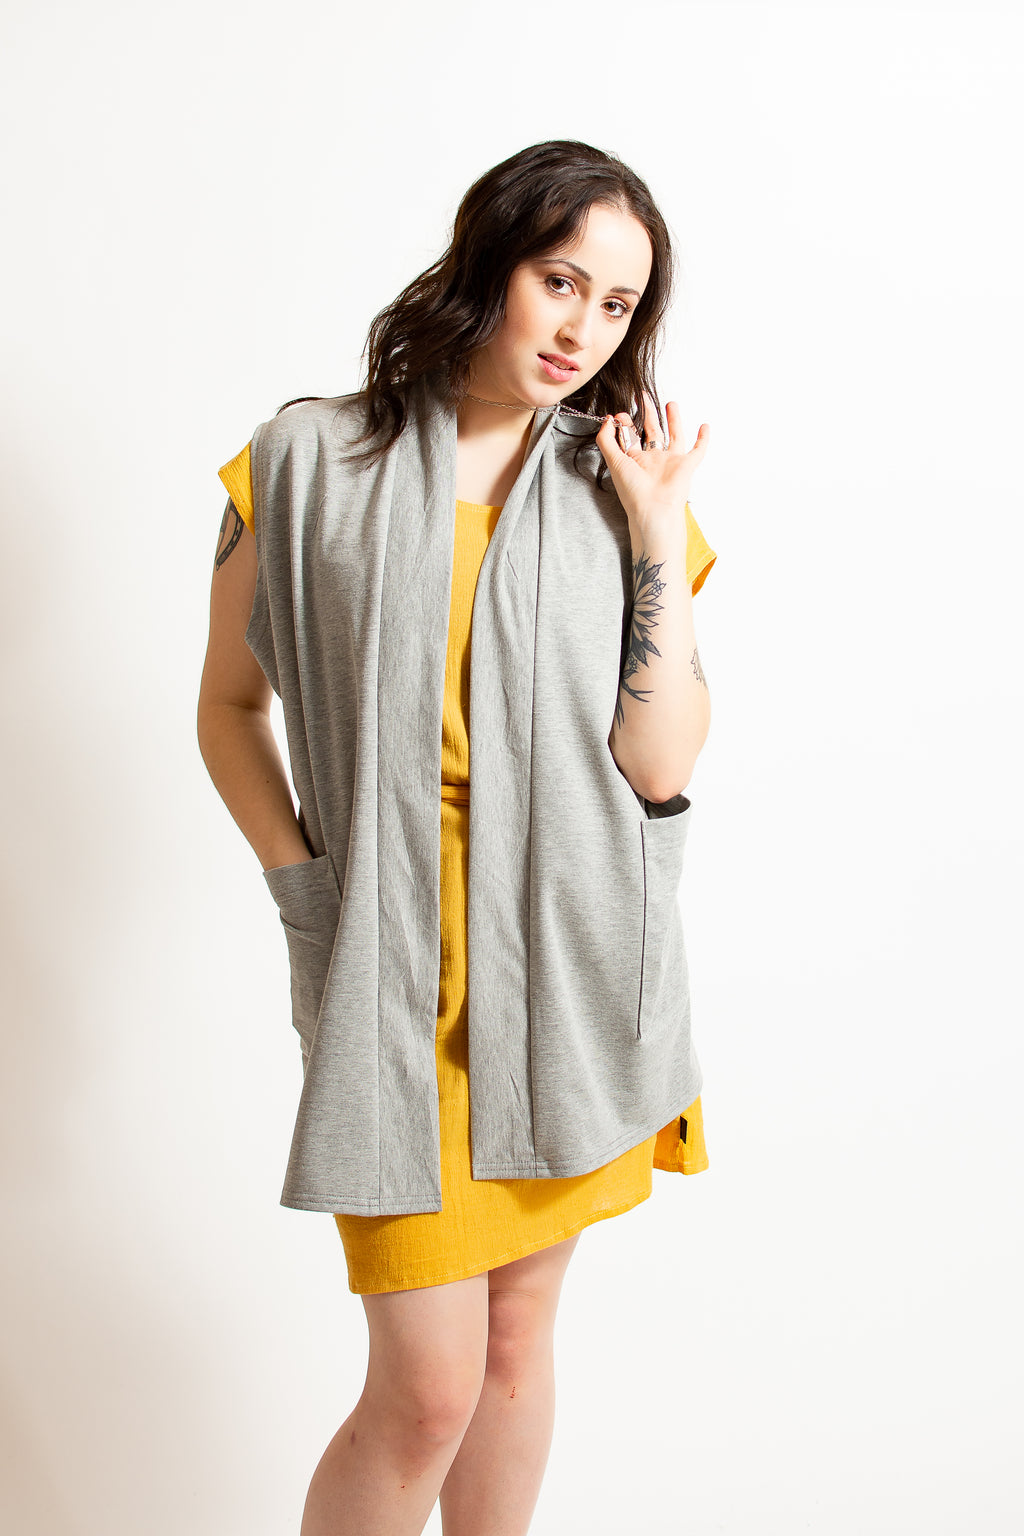 Ramona Sleeveless Cardigan - 6 Colours